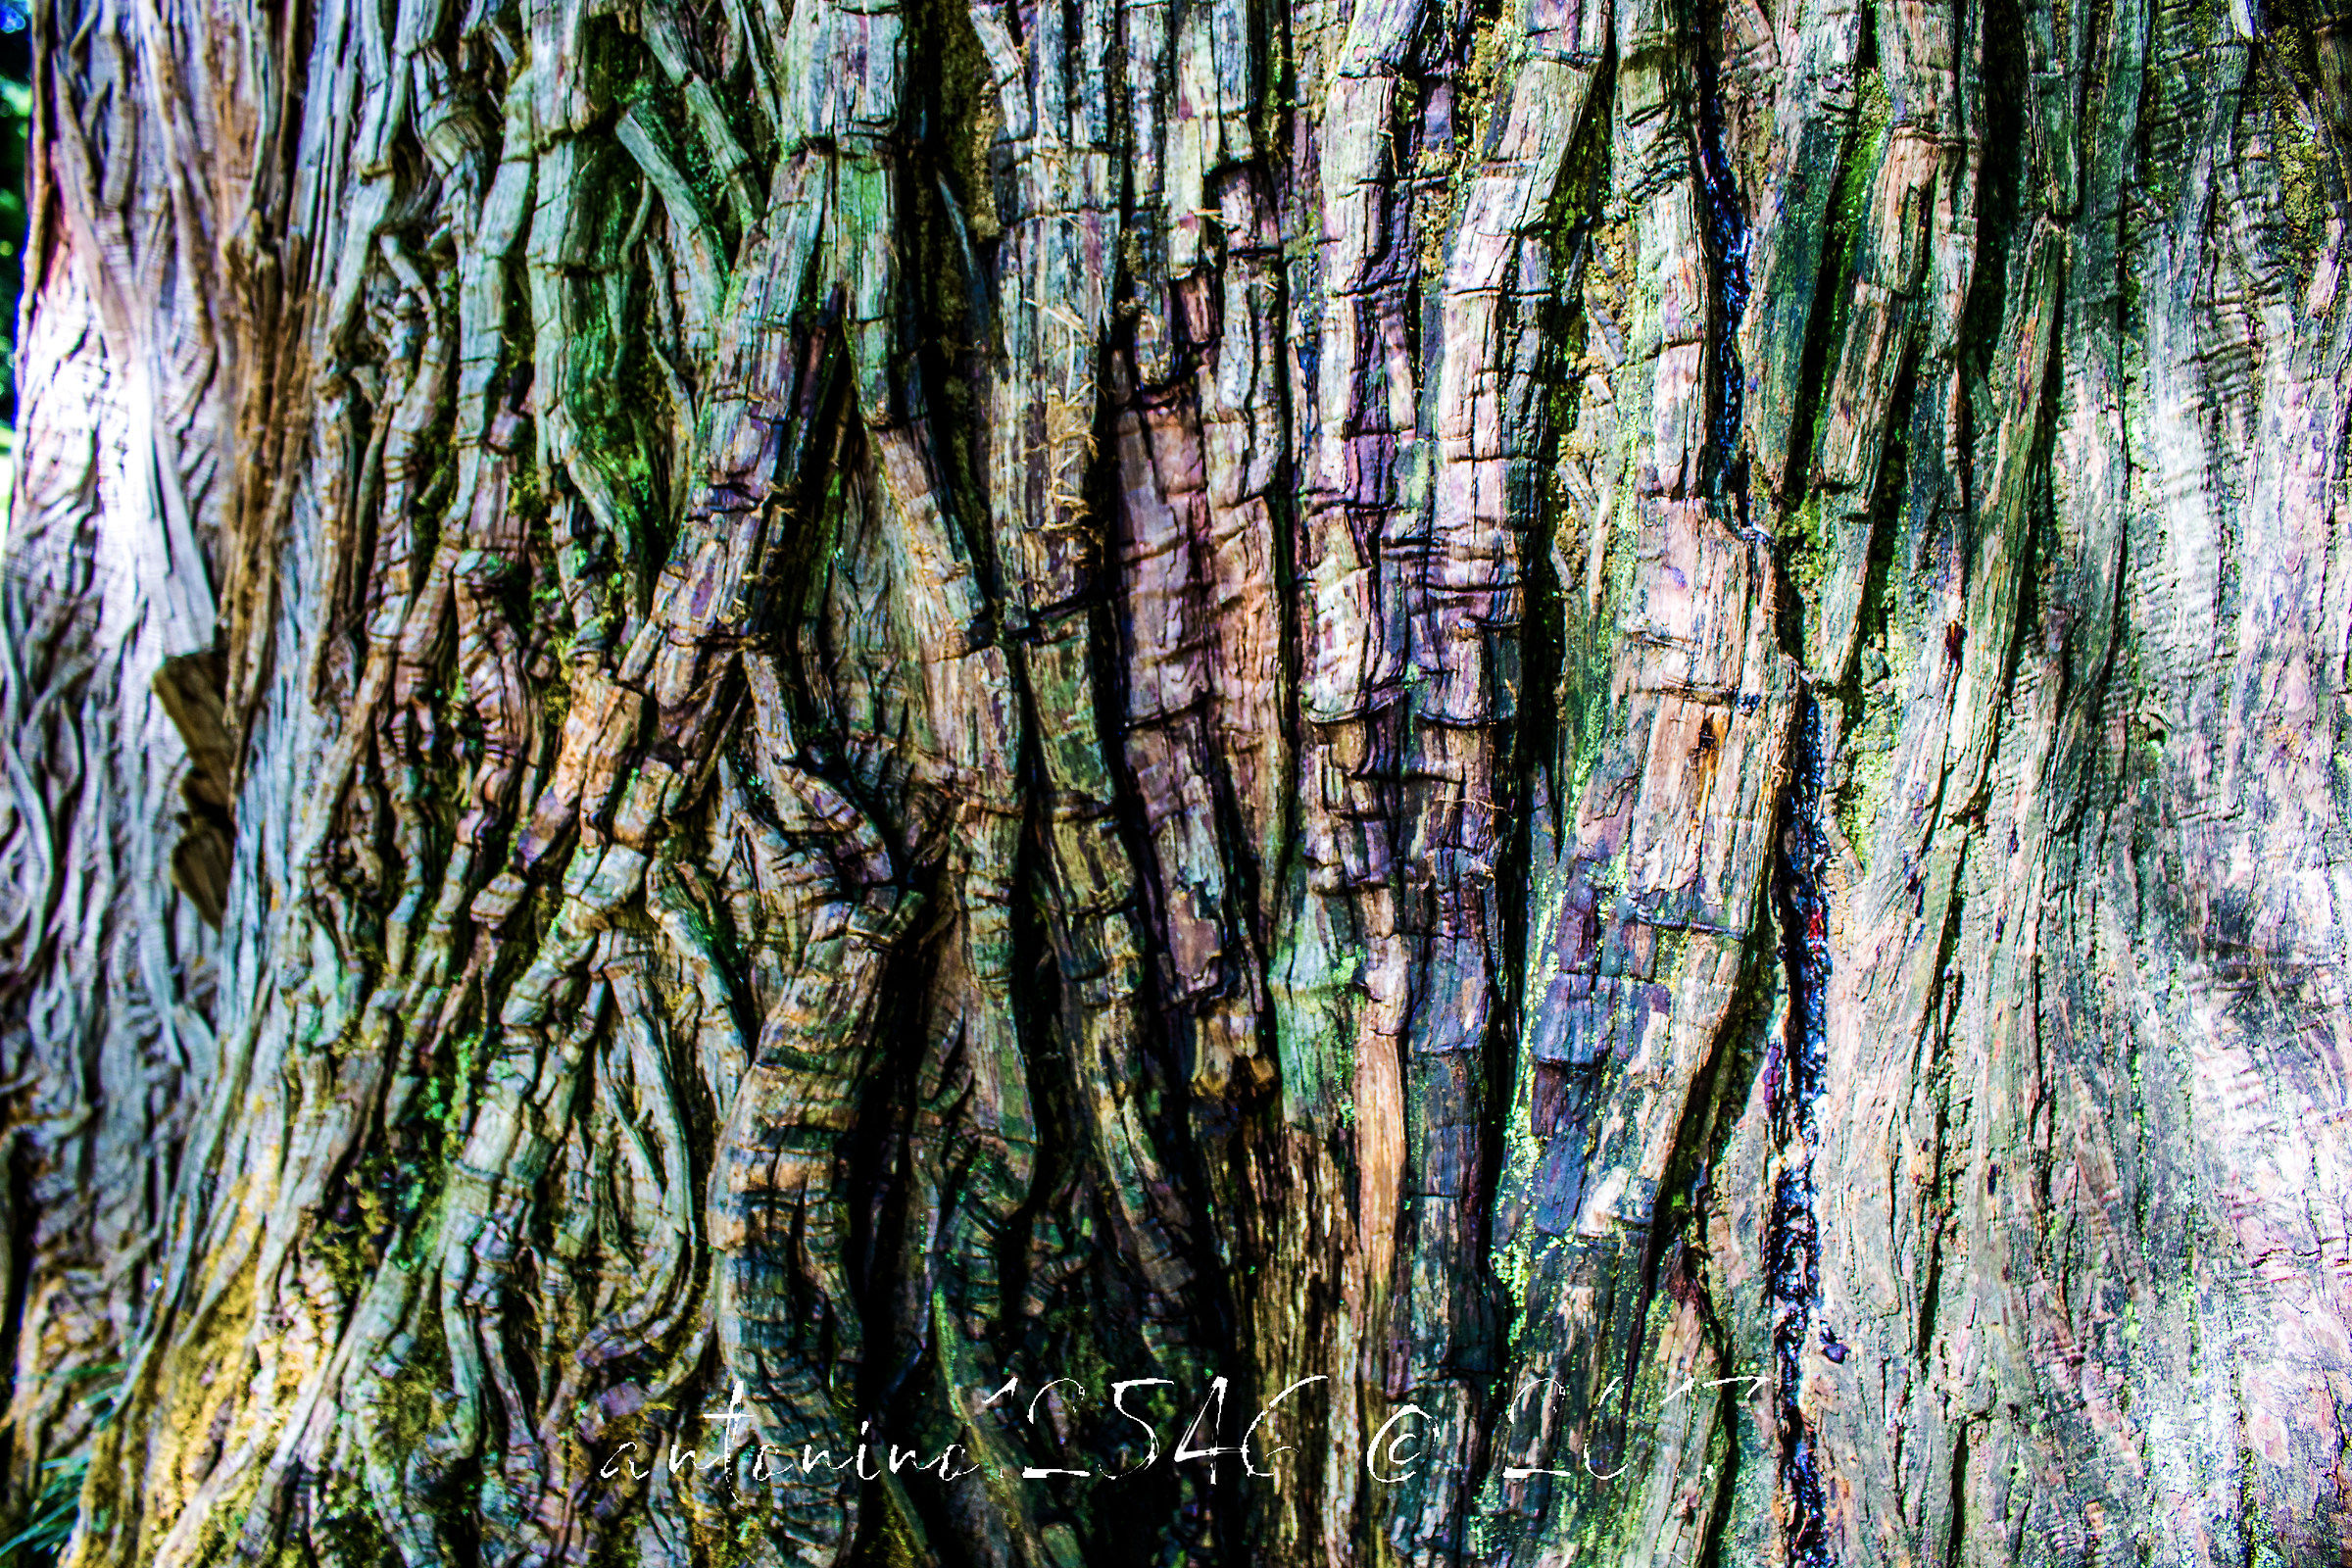 The bark colors...